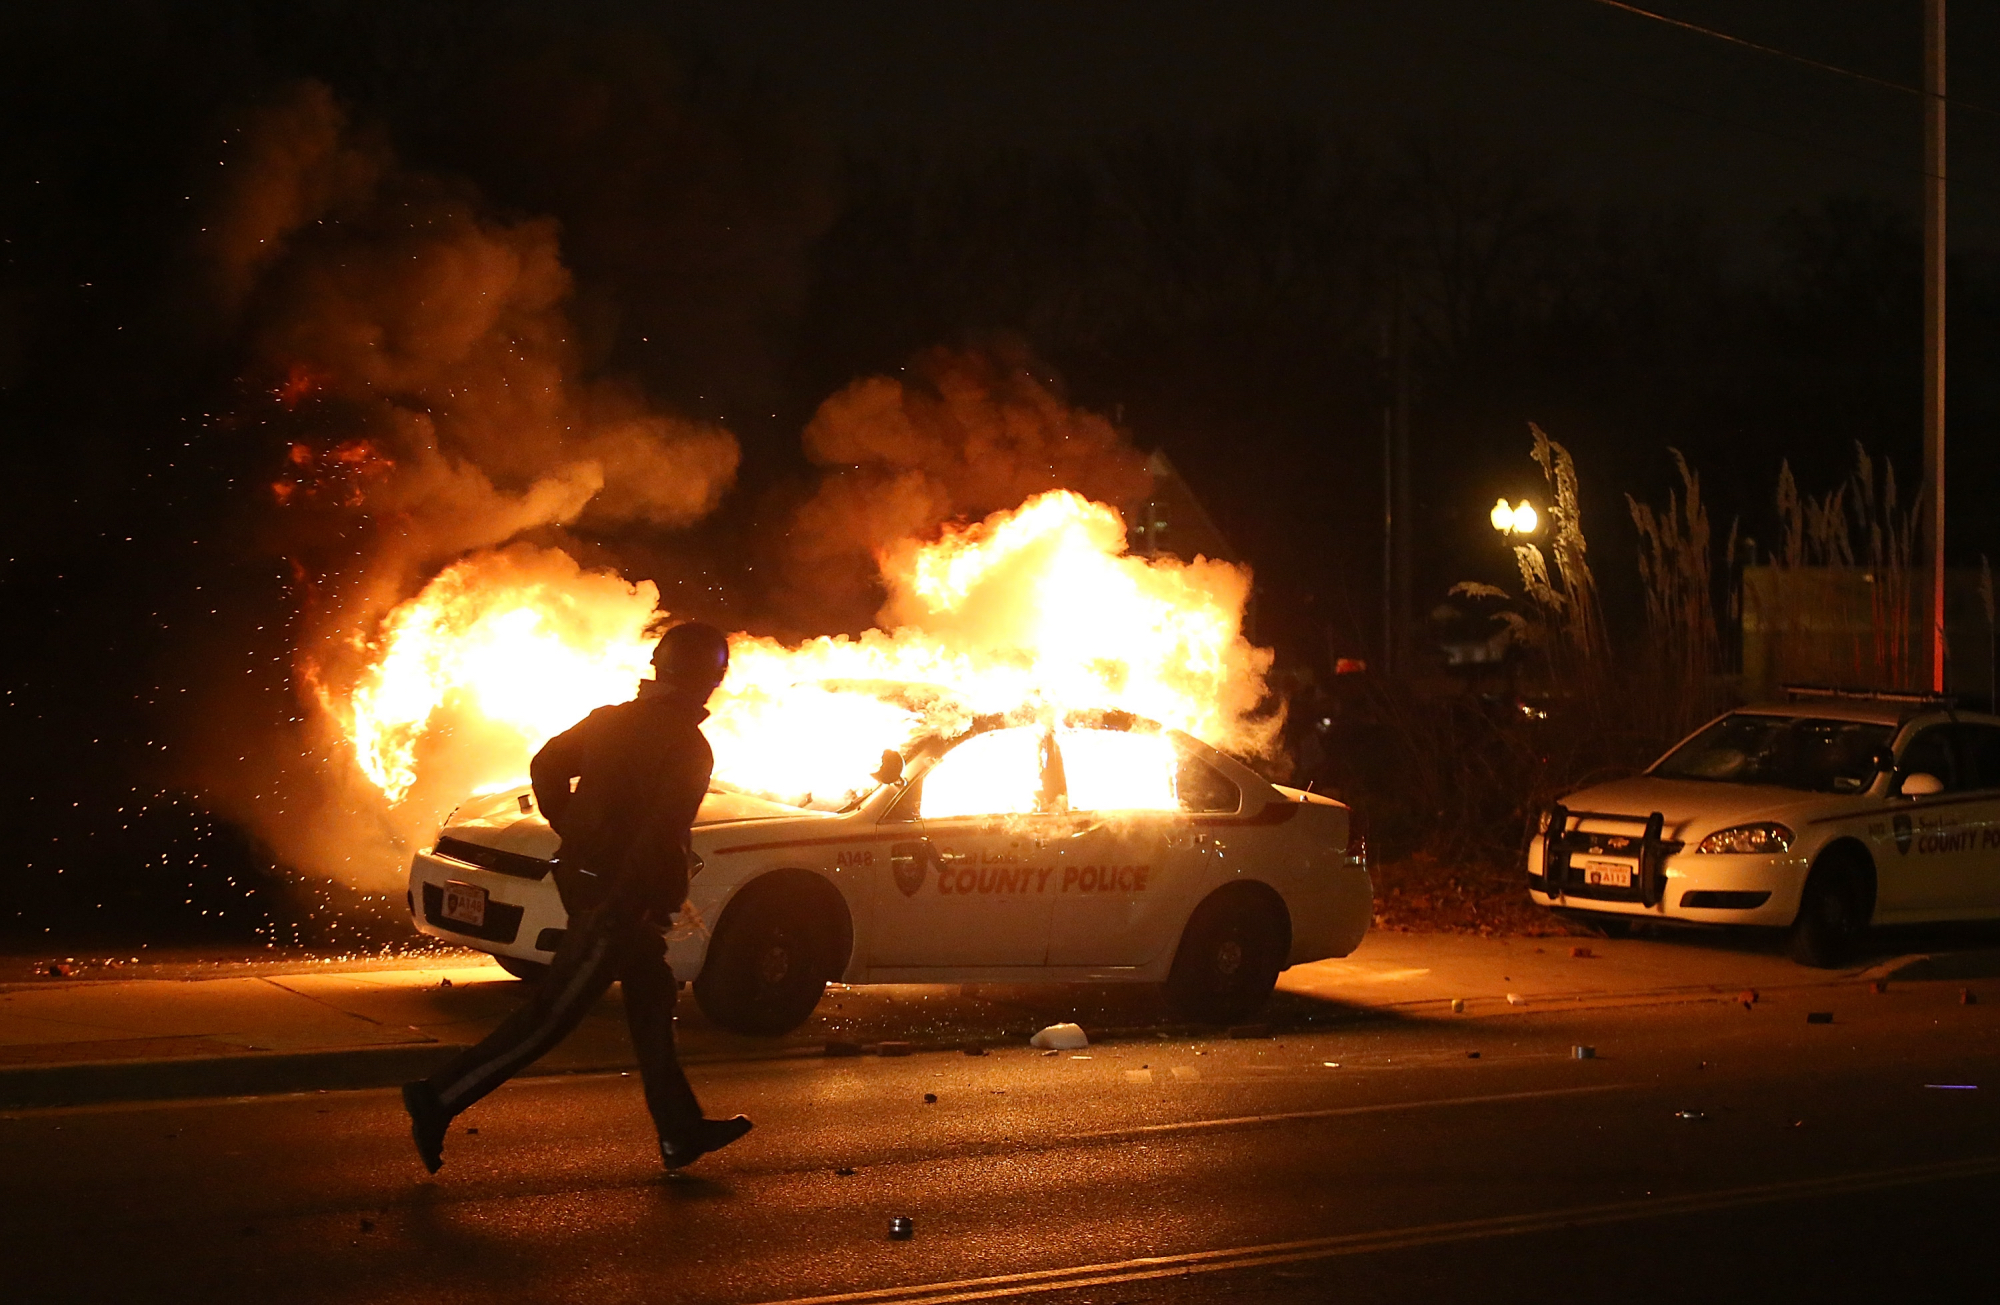 Some of the worst displays of unrest included burning police cars and a Little Caesar's pizza shop, looting, and scattered gunshots.